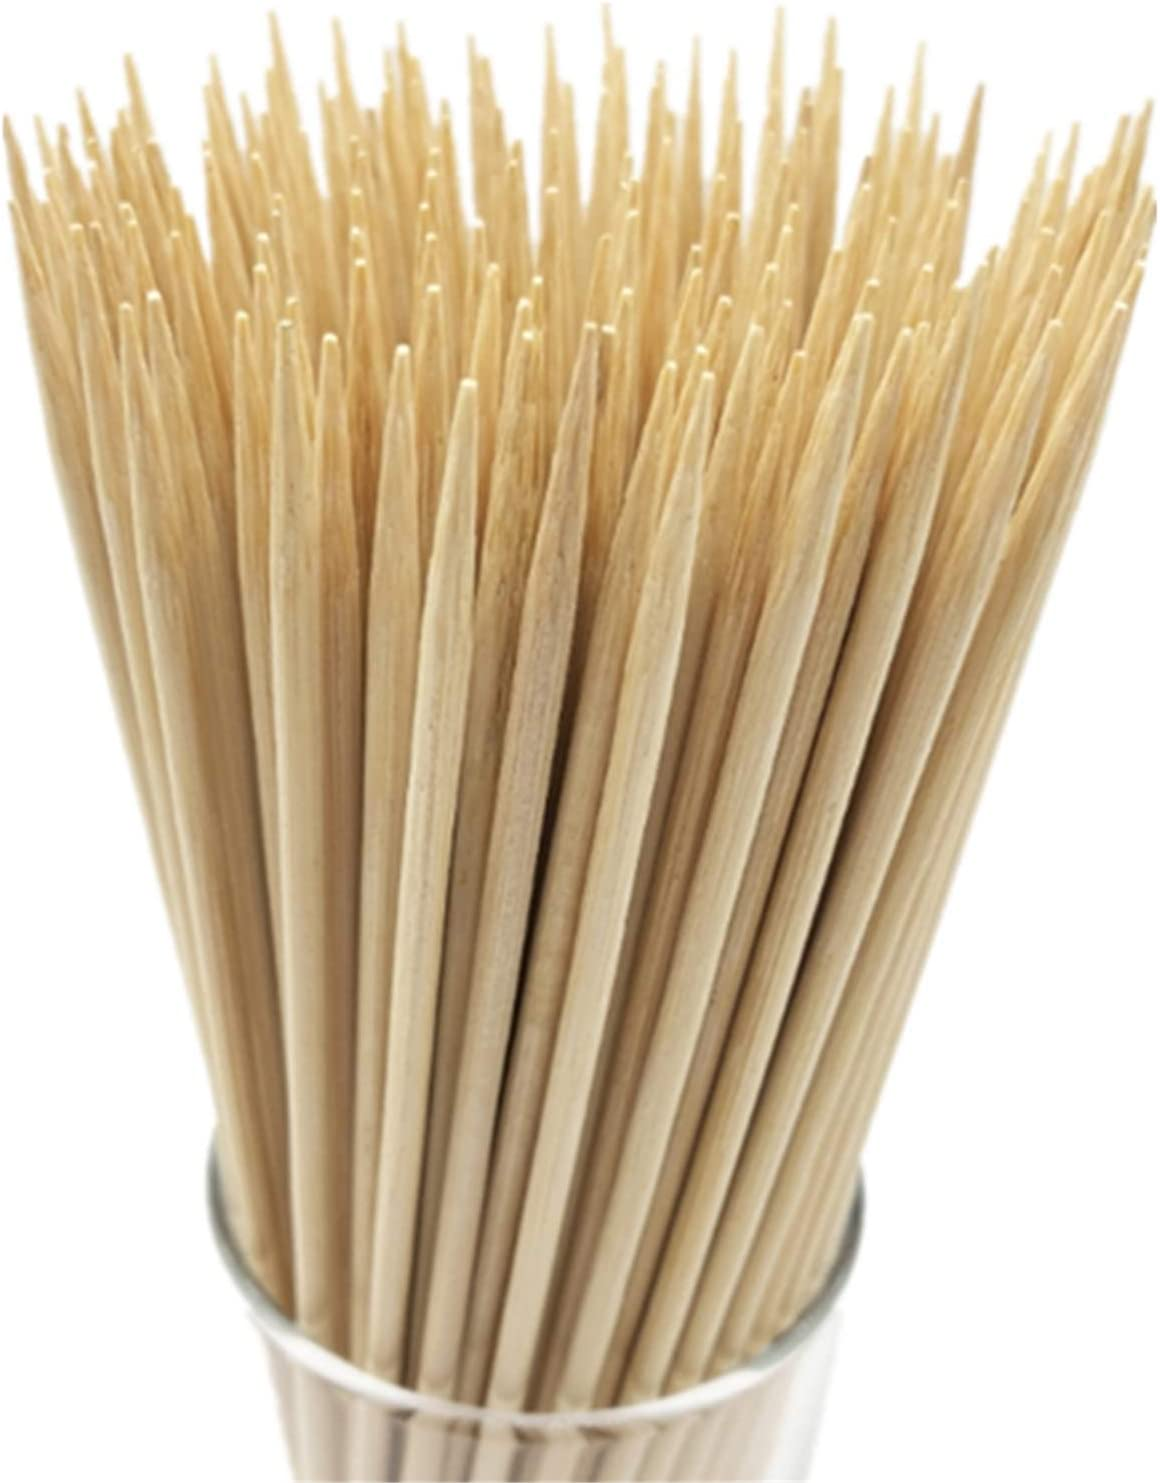 """HOPELF 14"""" Natural Bamboo Skewers Sticks for BBQ,Kabob,Grilling,Barbecue,Kitchen,Roasting,Marshmallows,Plant Stakes,Crafting.Φ=4mm, More Size Choices 6""""/8""""/10""""/12""""/16""""/30""""(100 PCS) : Garden & Outdoor"""